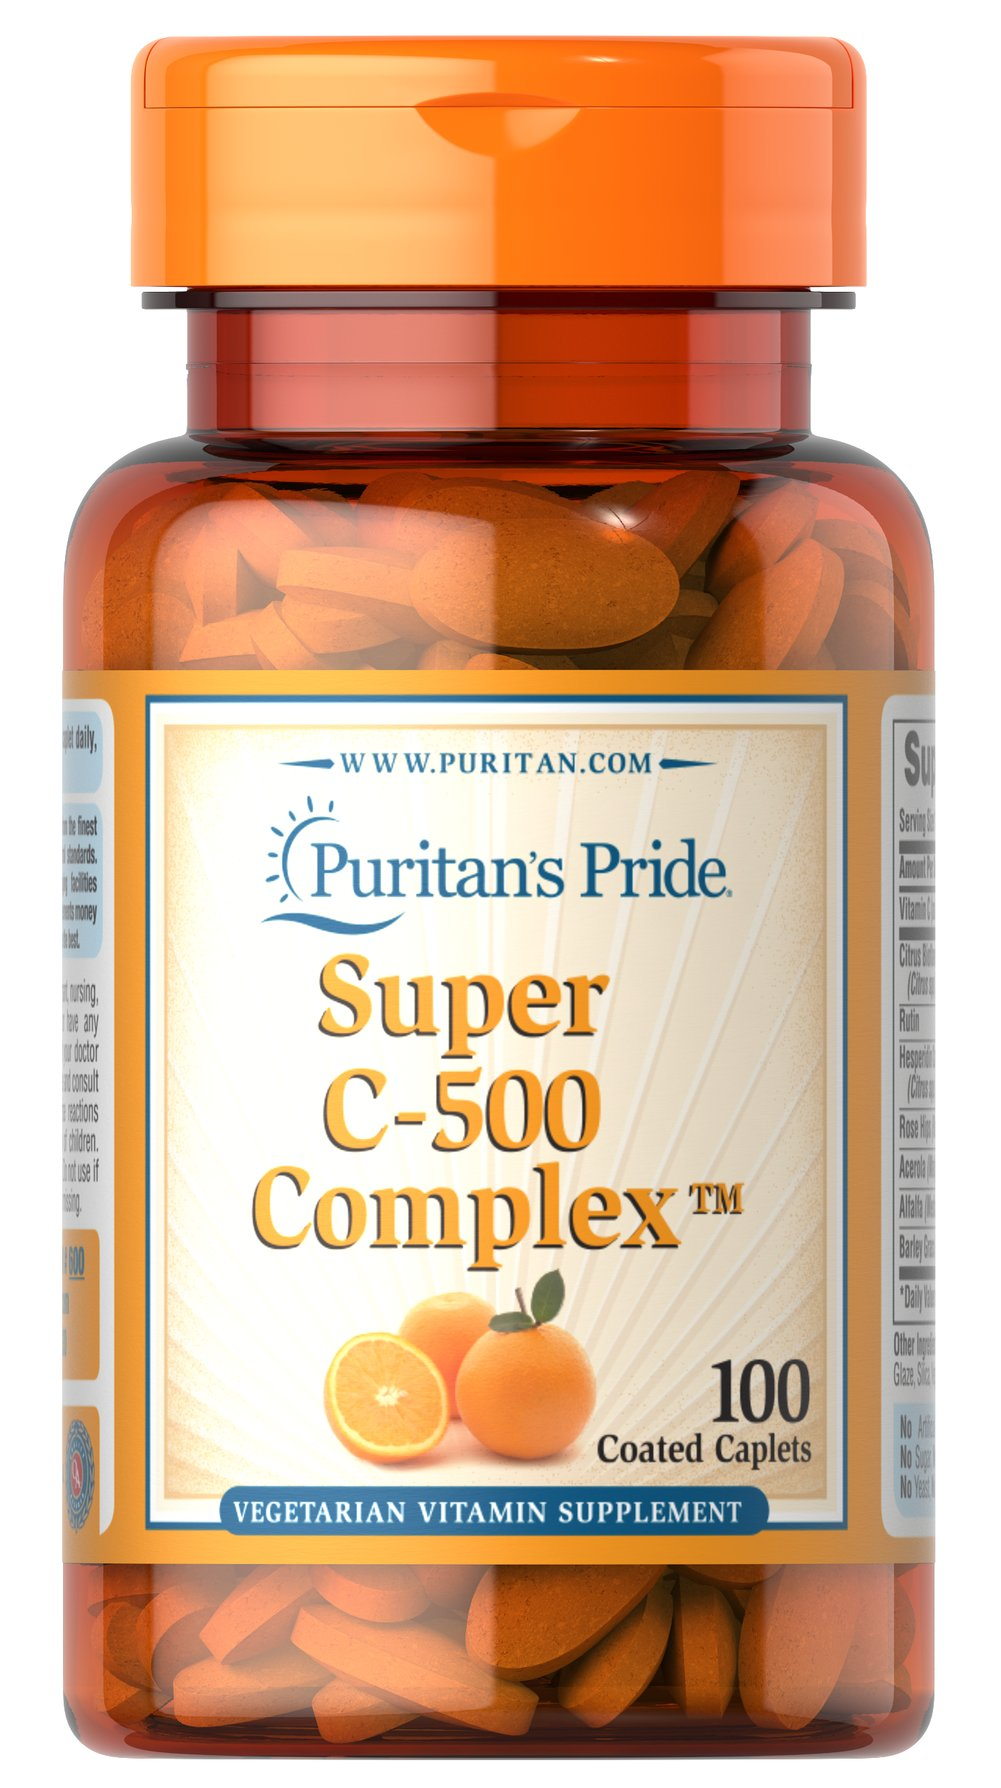 Vitamin C-500 Complex <p>Vitamin C  is essential to many functions in the body and is one of the leading vitamins for immune support.** Our C-complex includes potent Vitamin C as Ascorbic Acid. We also include Citrus Bioflavonoids, Rose Hips, Rutin, and Acerola.**</p><p>Offers superior antioxidant support.**</p><p>Supports healthy immune function and promotes well-being.**</p> 100 Coated Caplets 500 mg $11.99